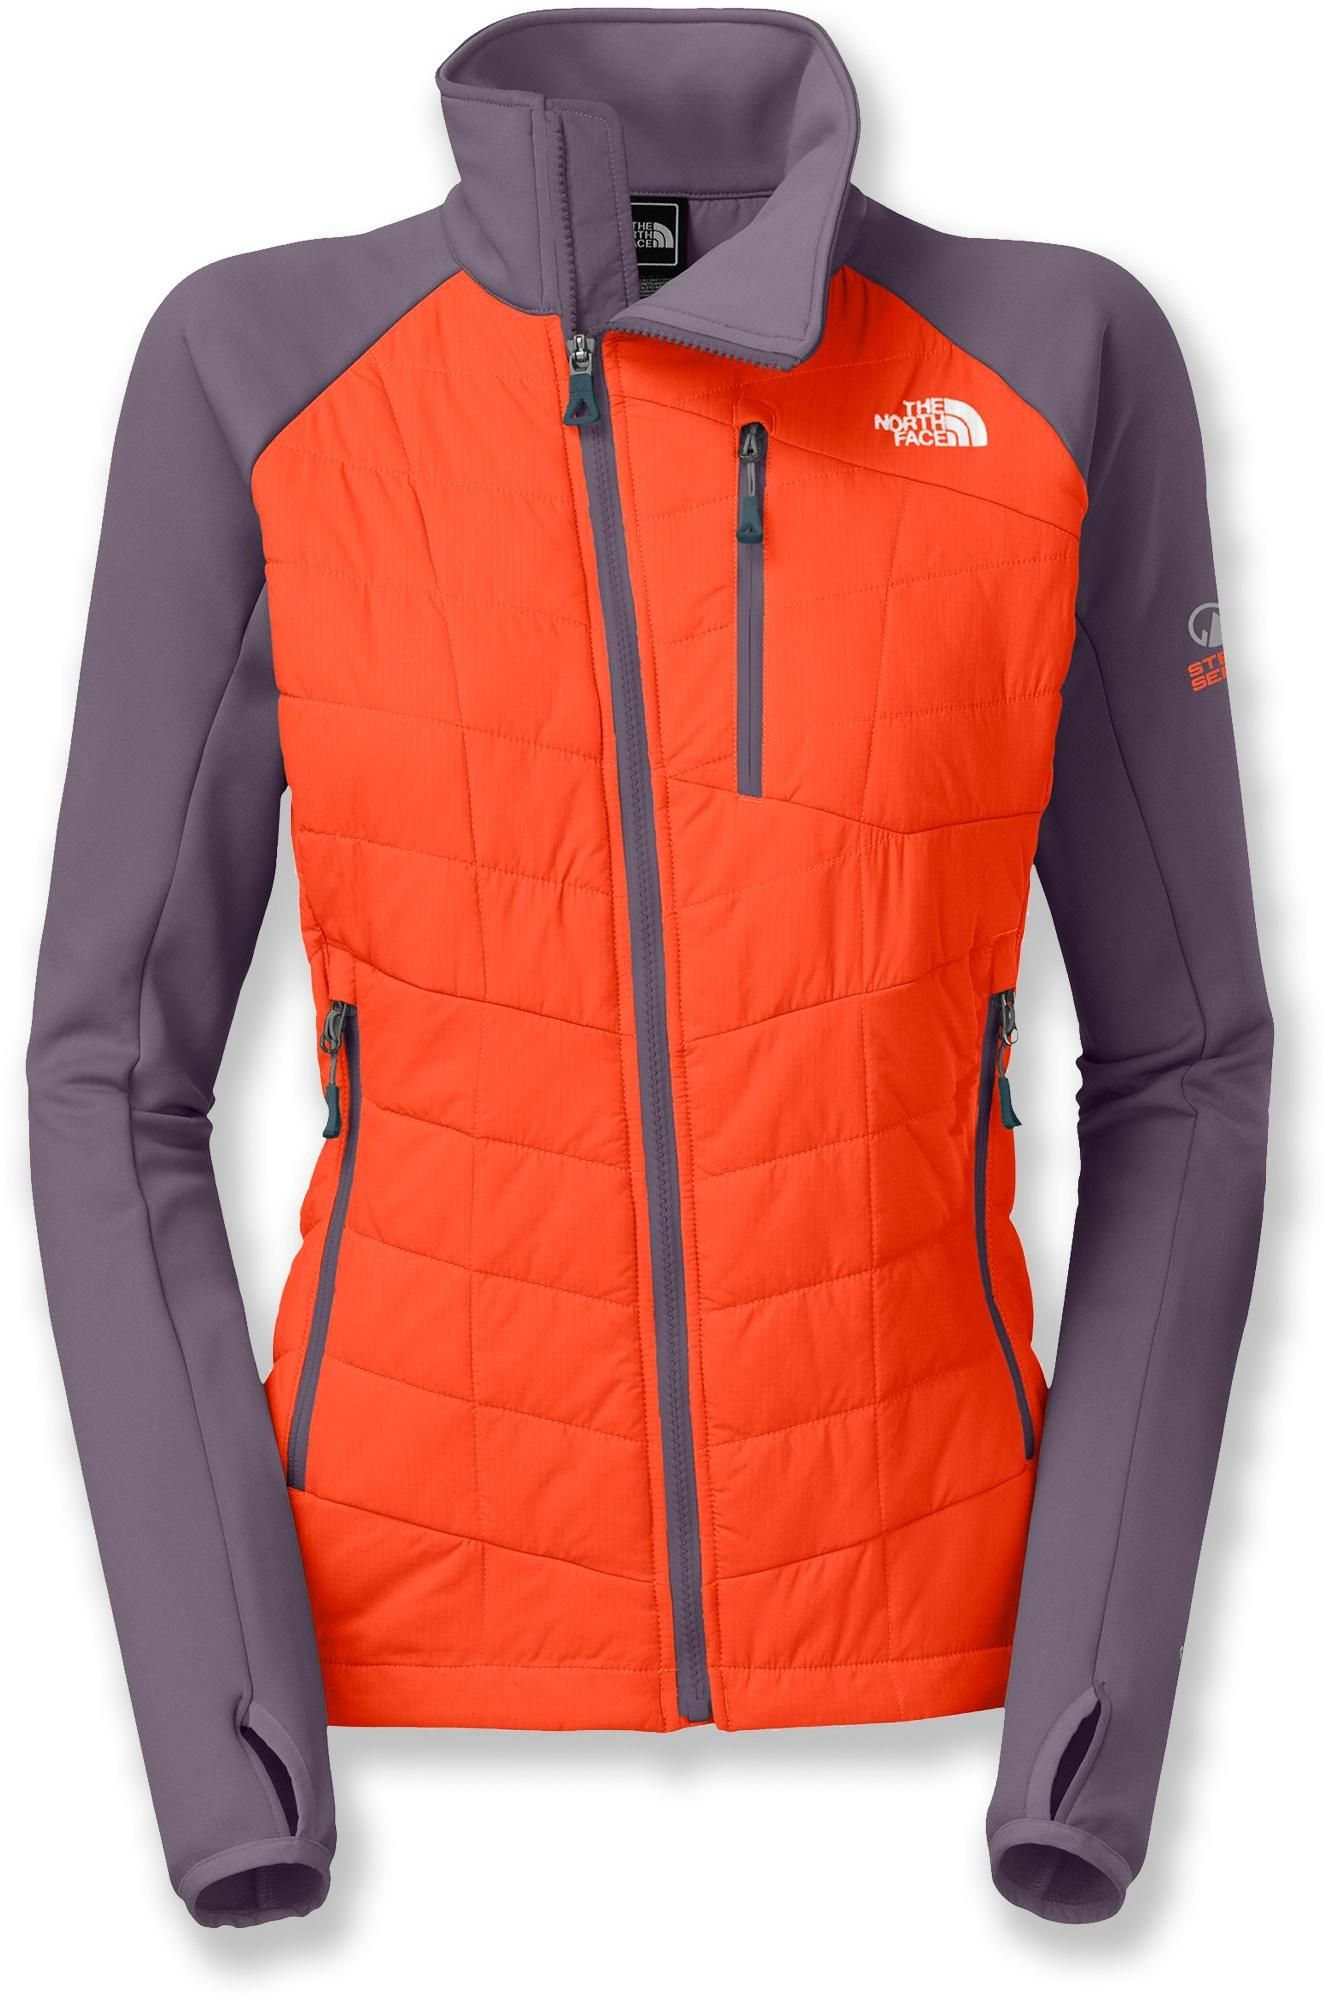 2665f766c The North Face Pemby Hybrid Insulated Jacket - Women's | REI Co-op ...